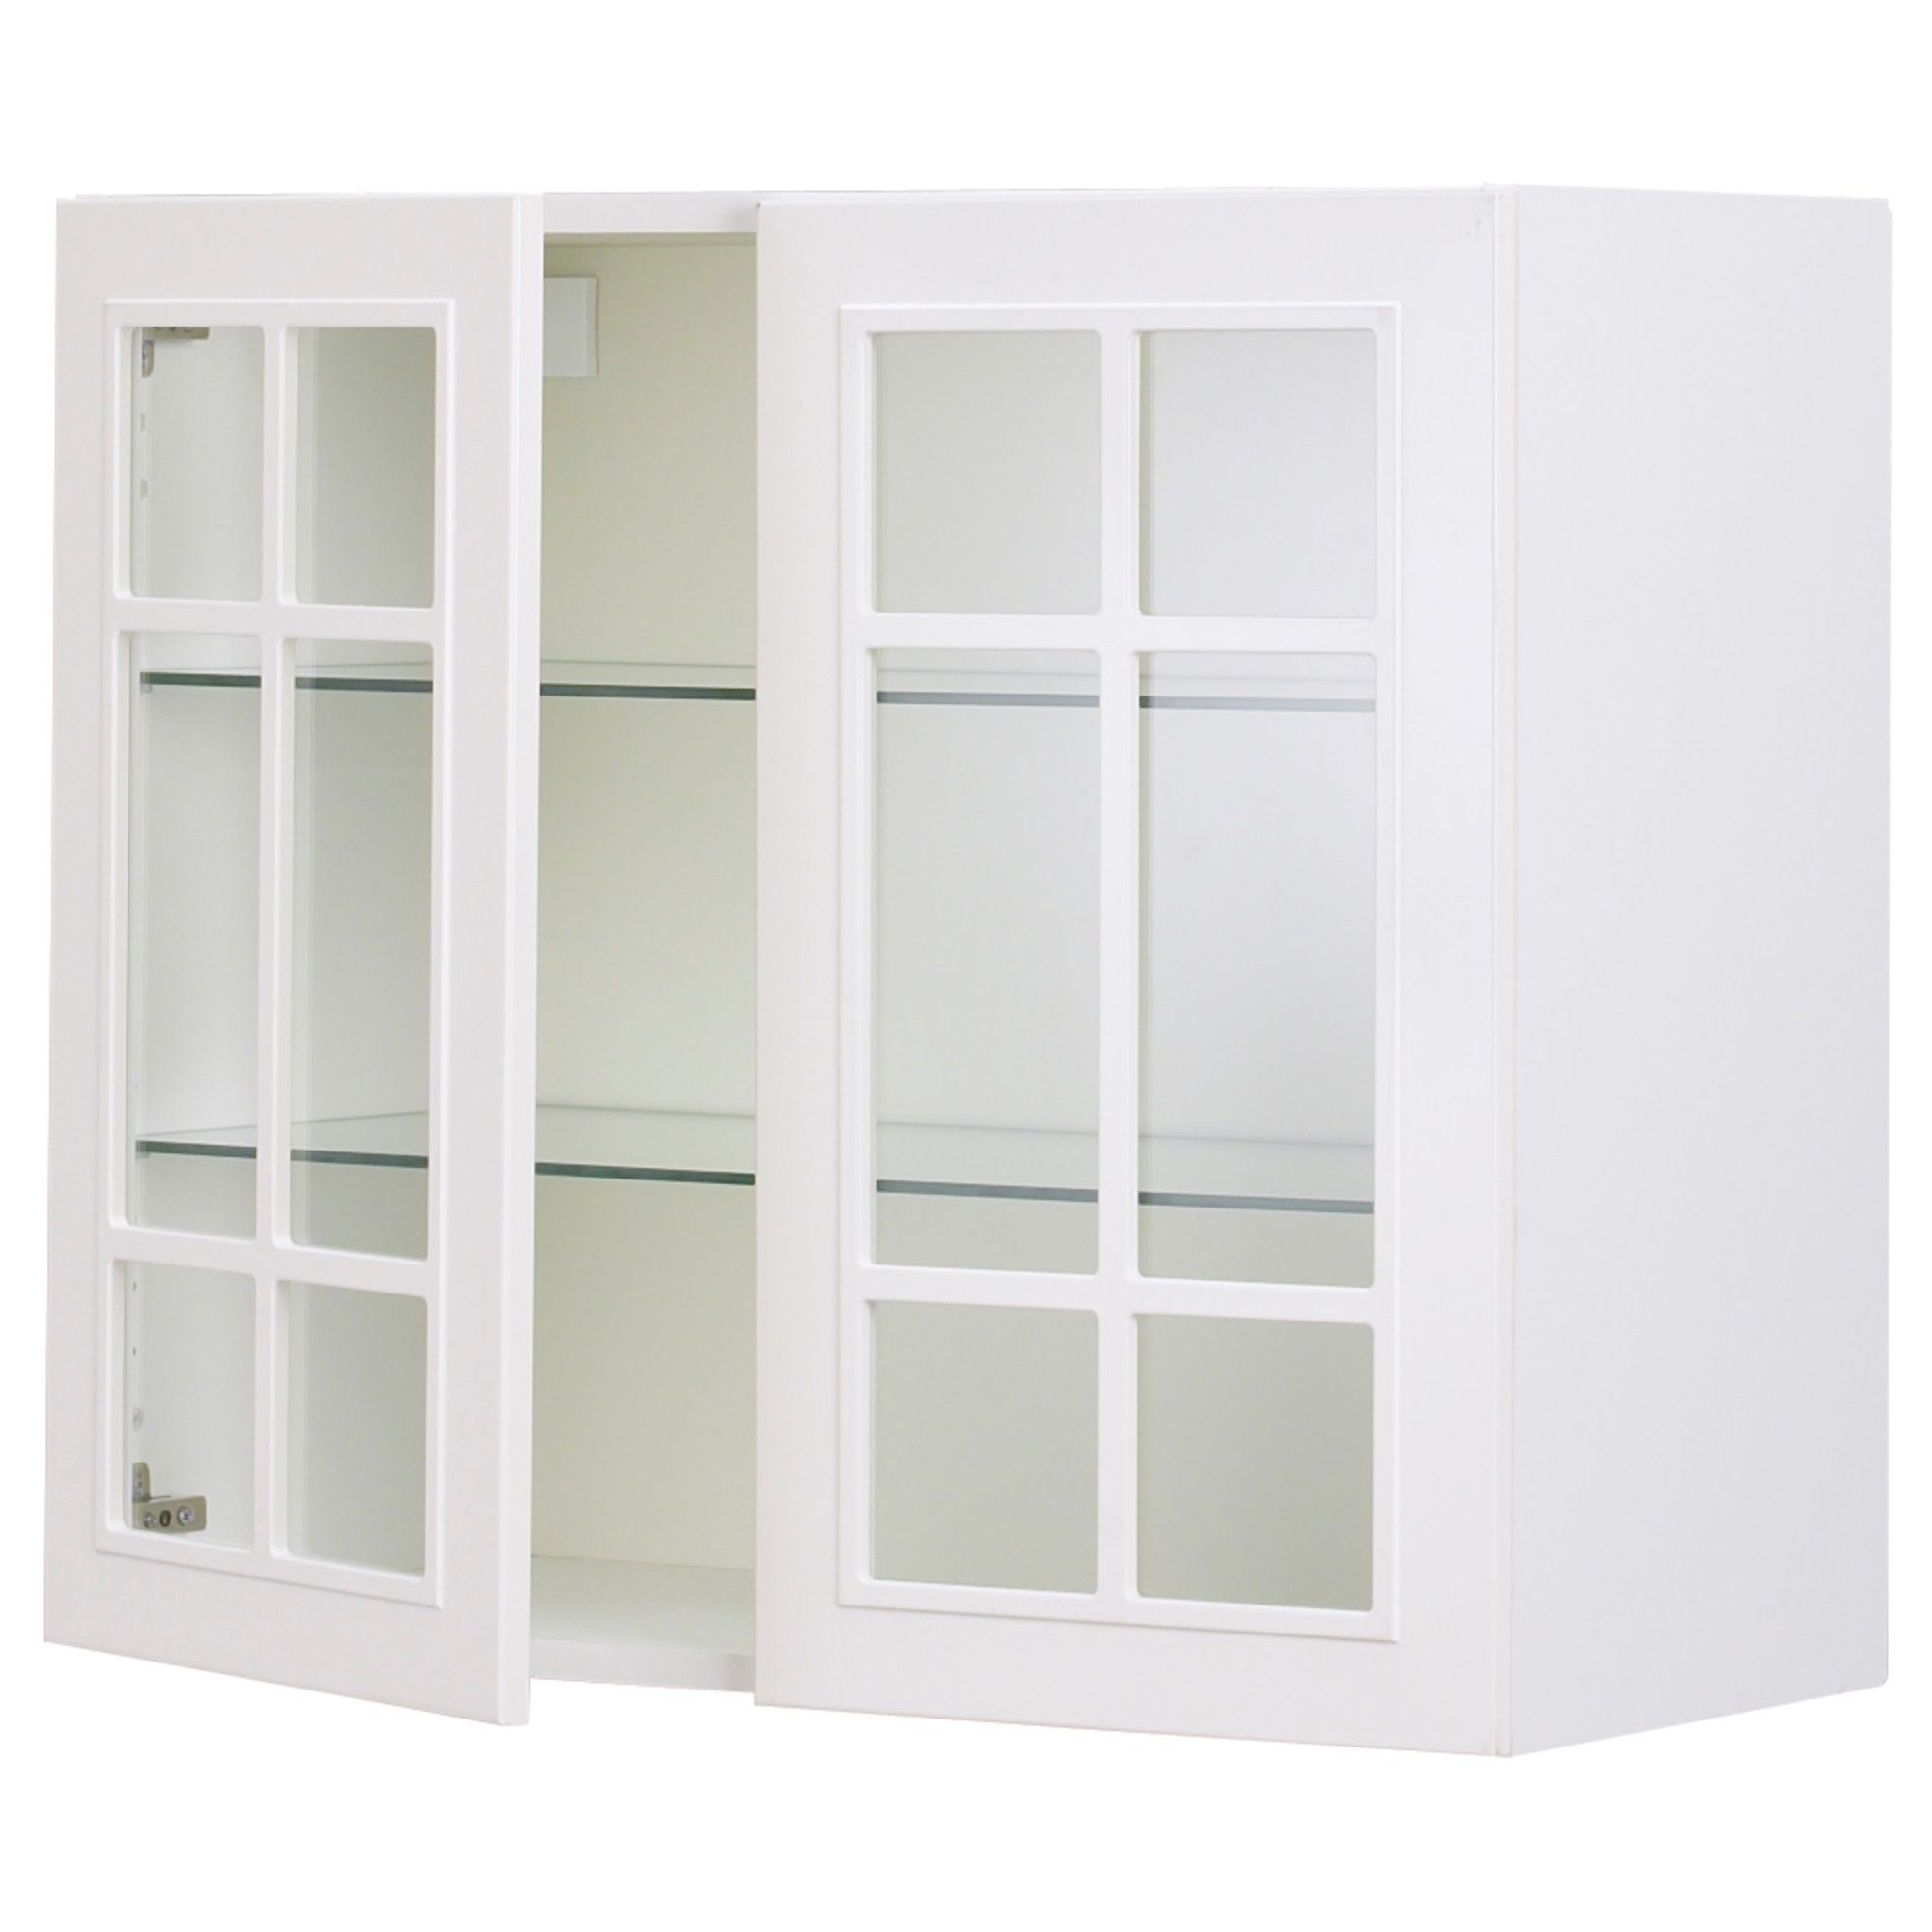 Upper cabinets for either side of window? FAKTUM Wall cabinet with 2 glass  doors - Stt off-white, cm - IKEA